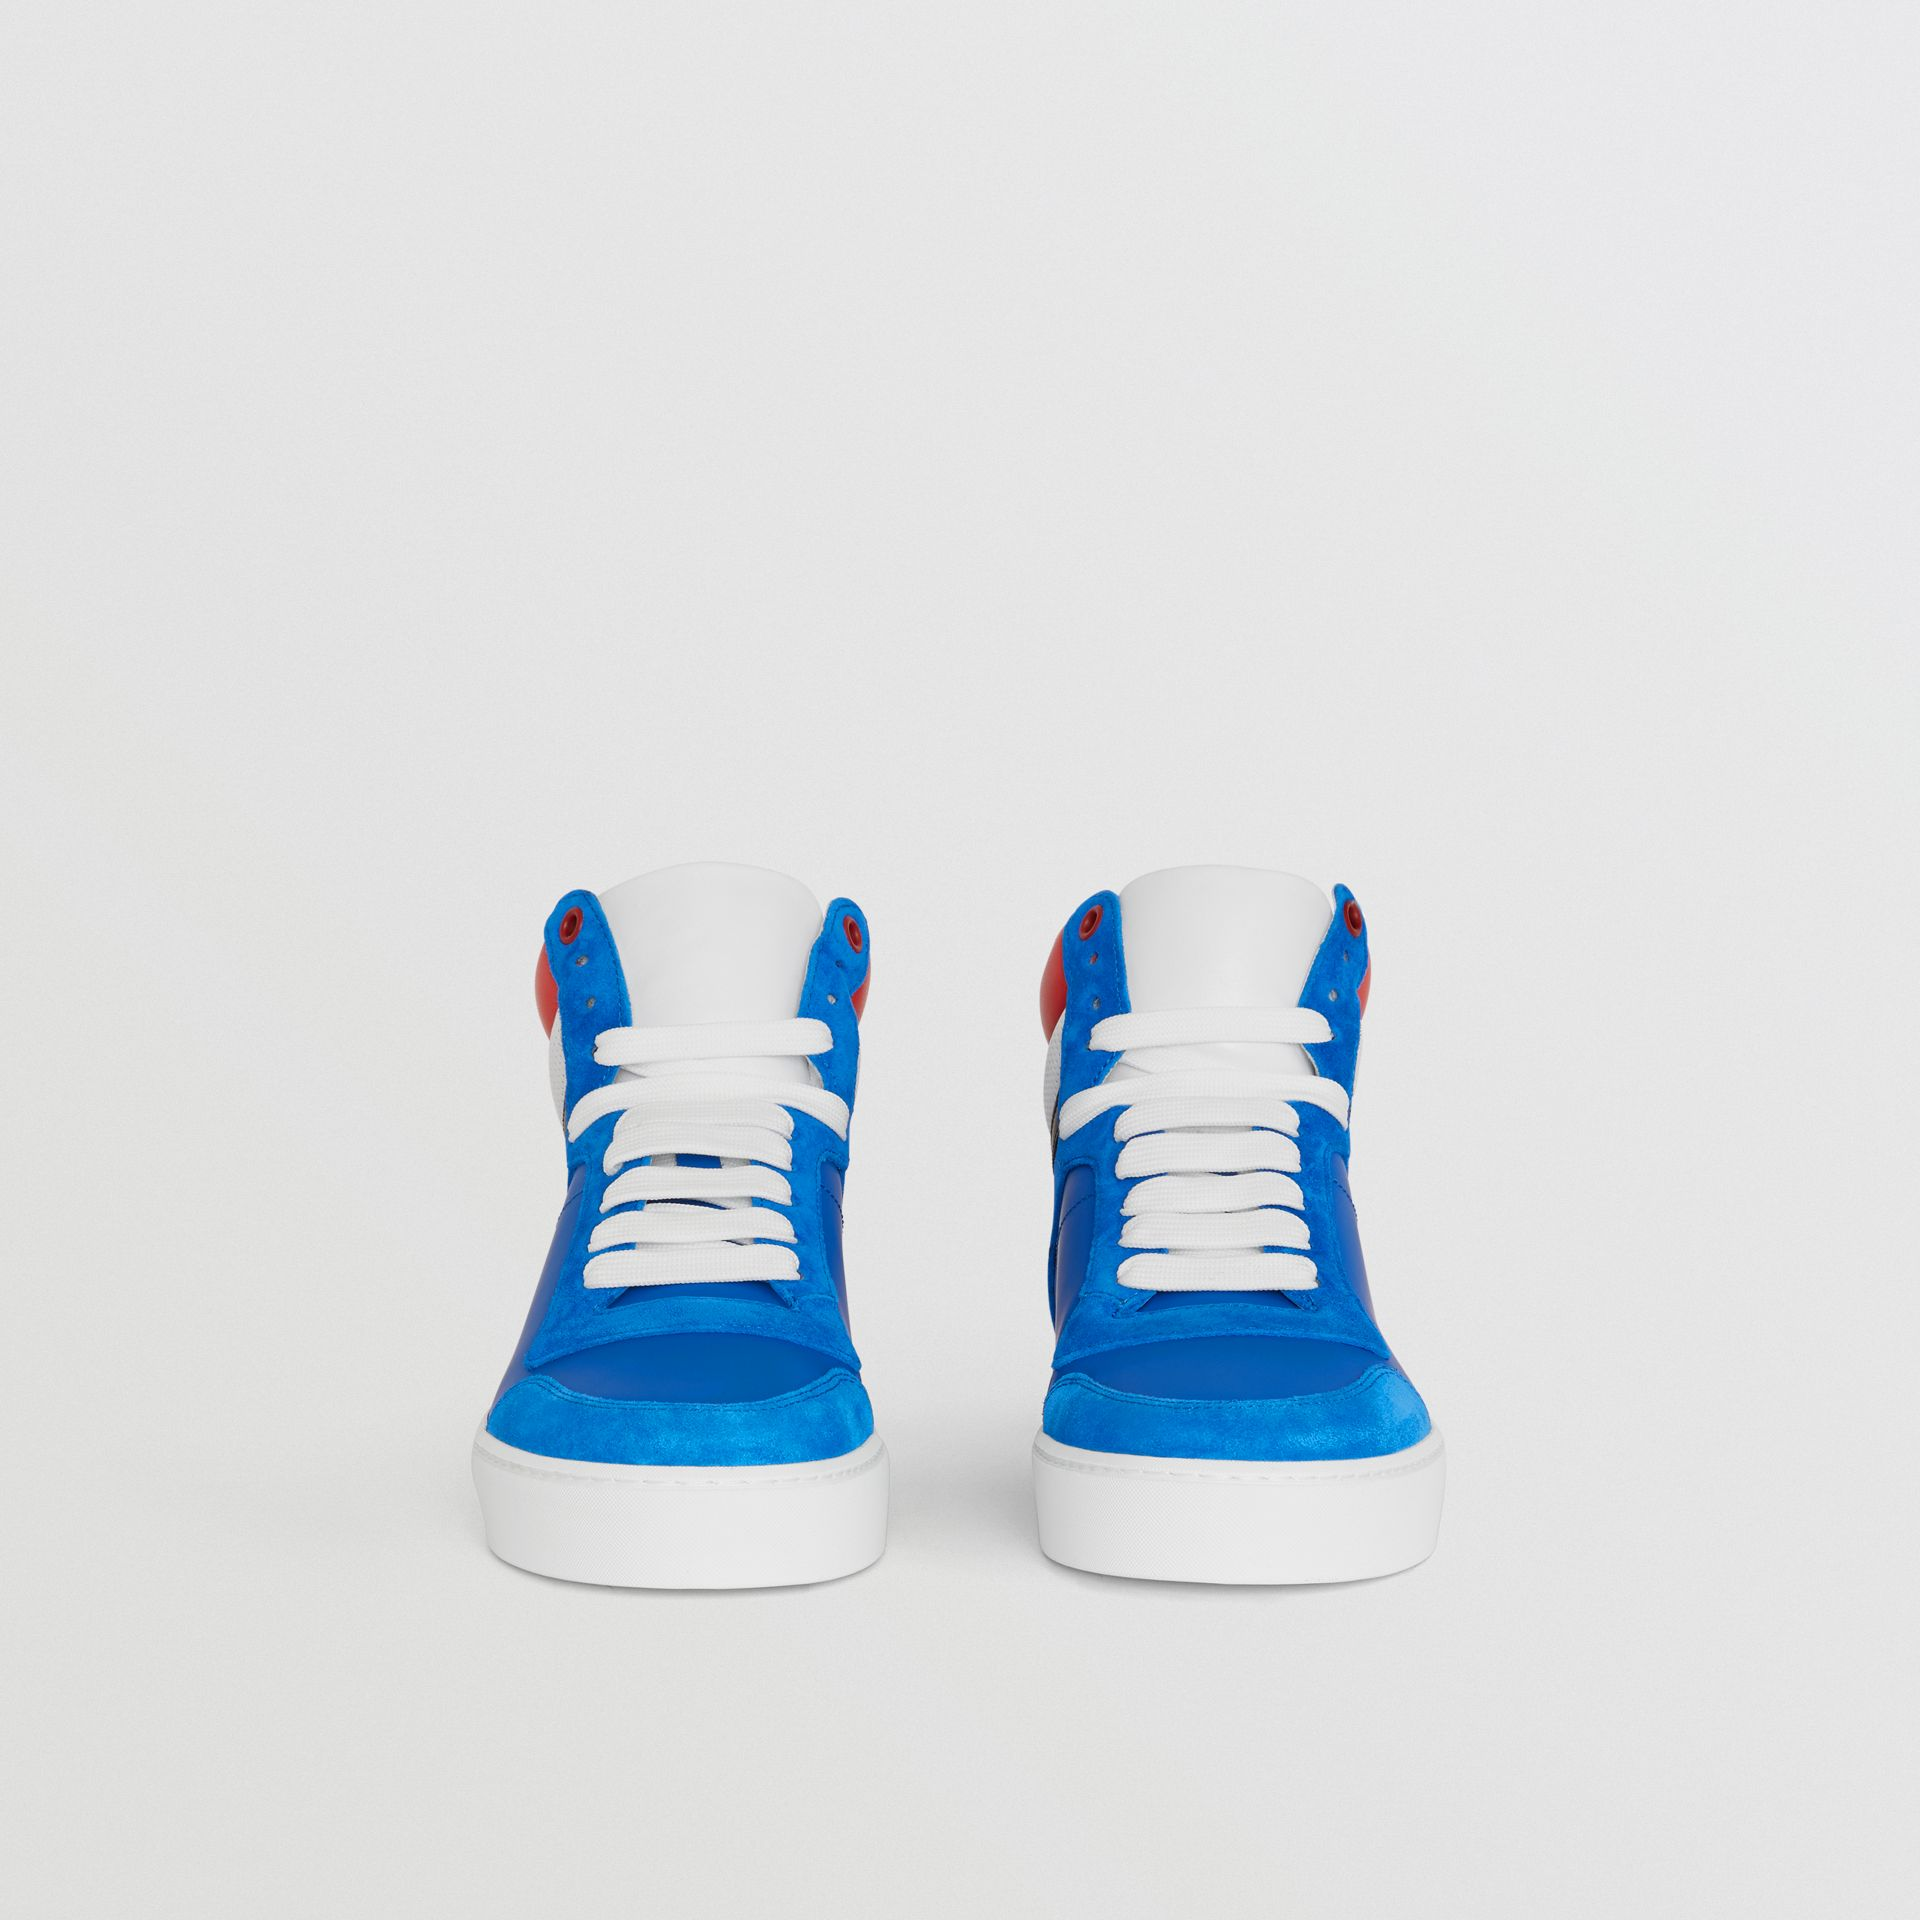 Leather and Suede High-top Sneakers in Bright Sky Blue - Women | Burberry - gallery image 2